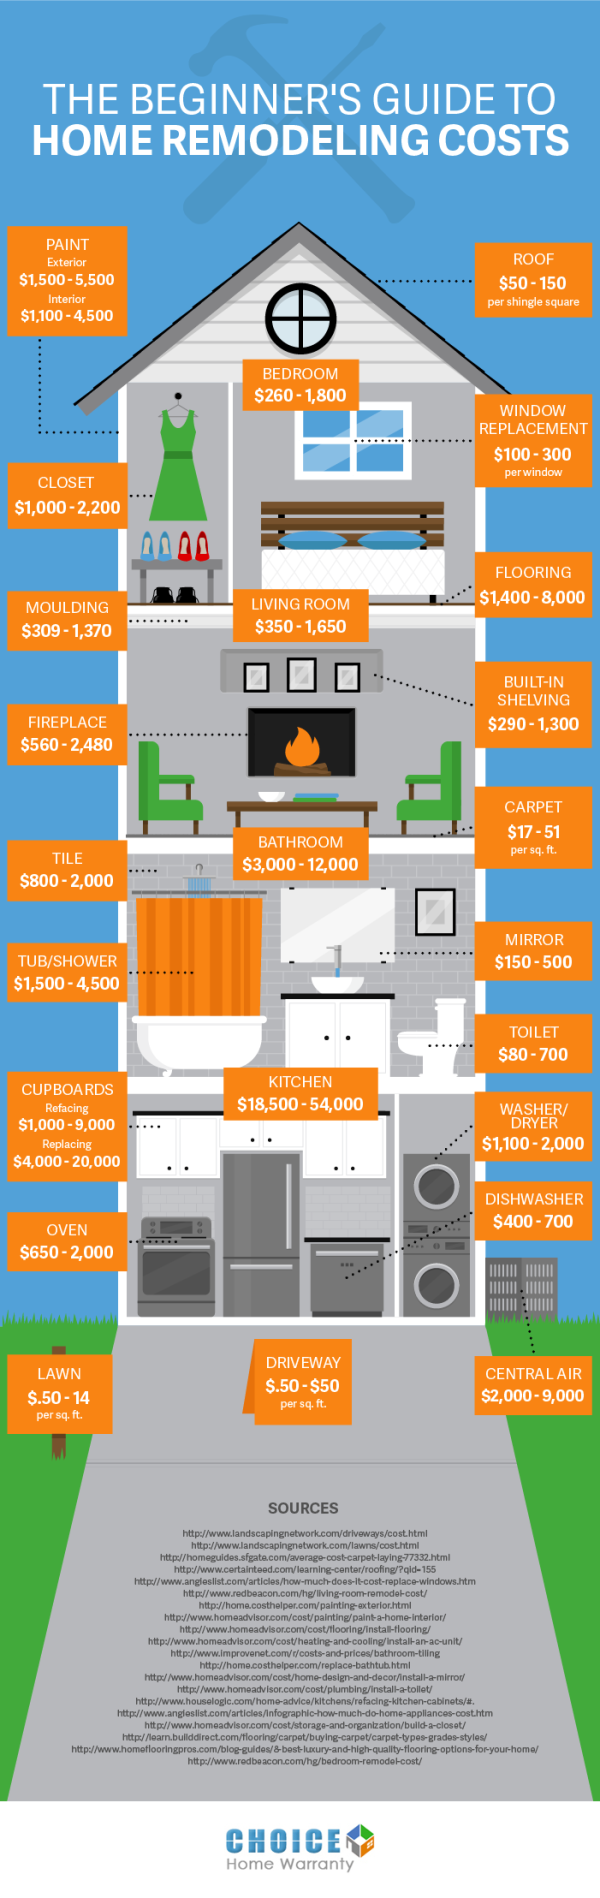 The Beginner S Guide To Home Remodeling Costs Erika Lewis Blog